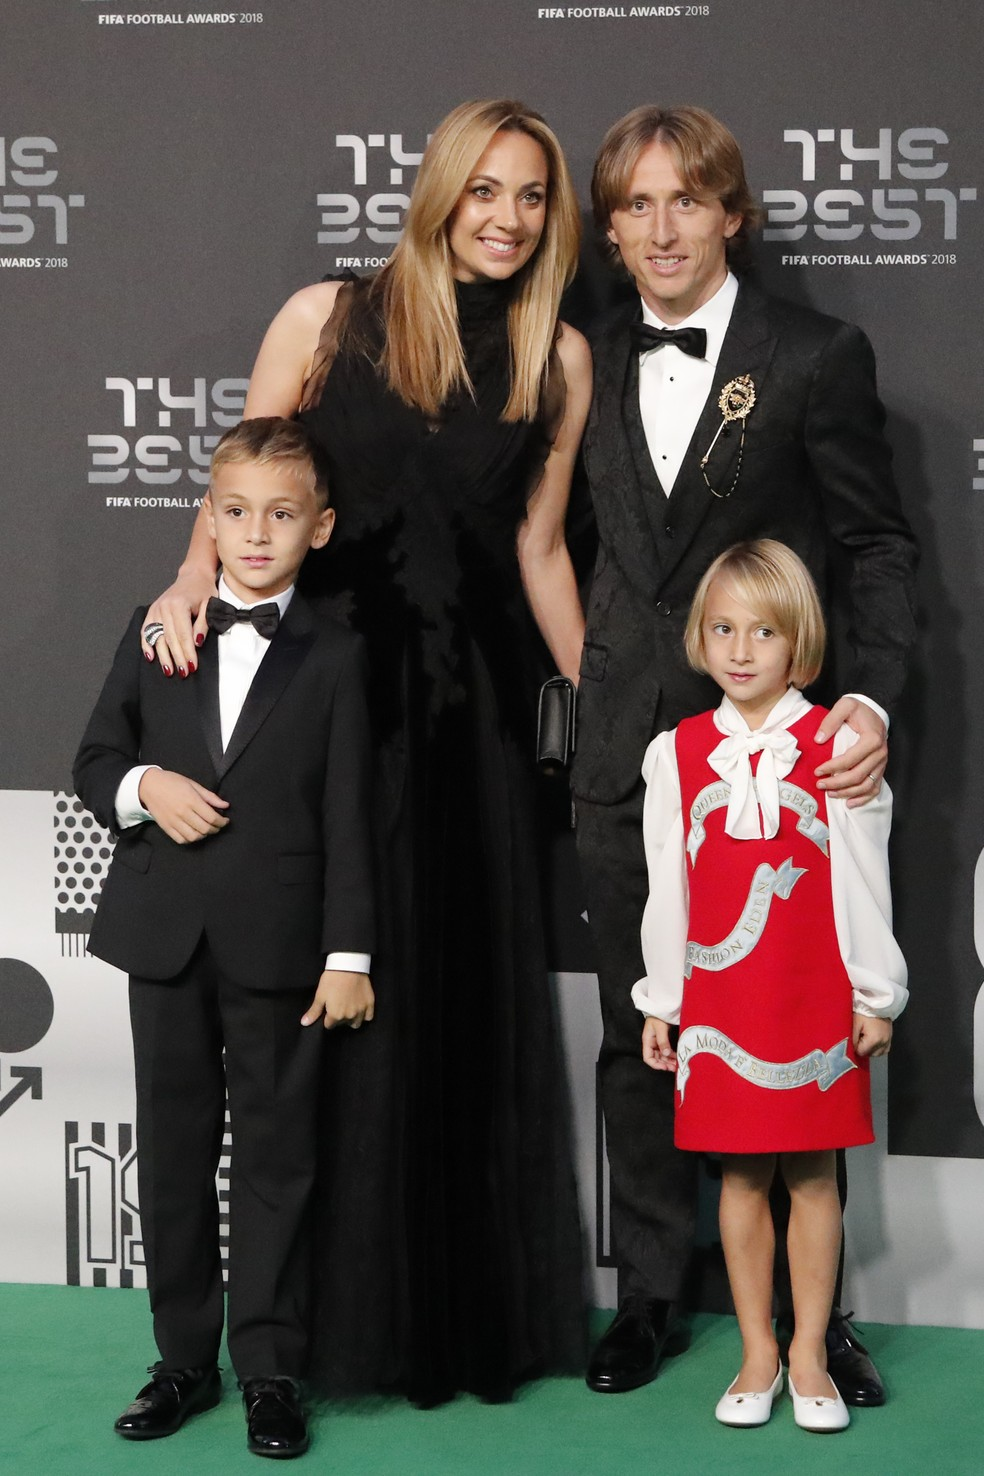 Modric levou a esposa e os filhos ao evento Fifa The Best — Foto: ASSOCIATED PRESS